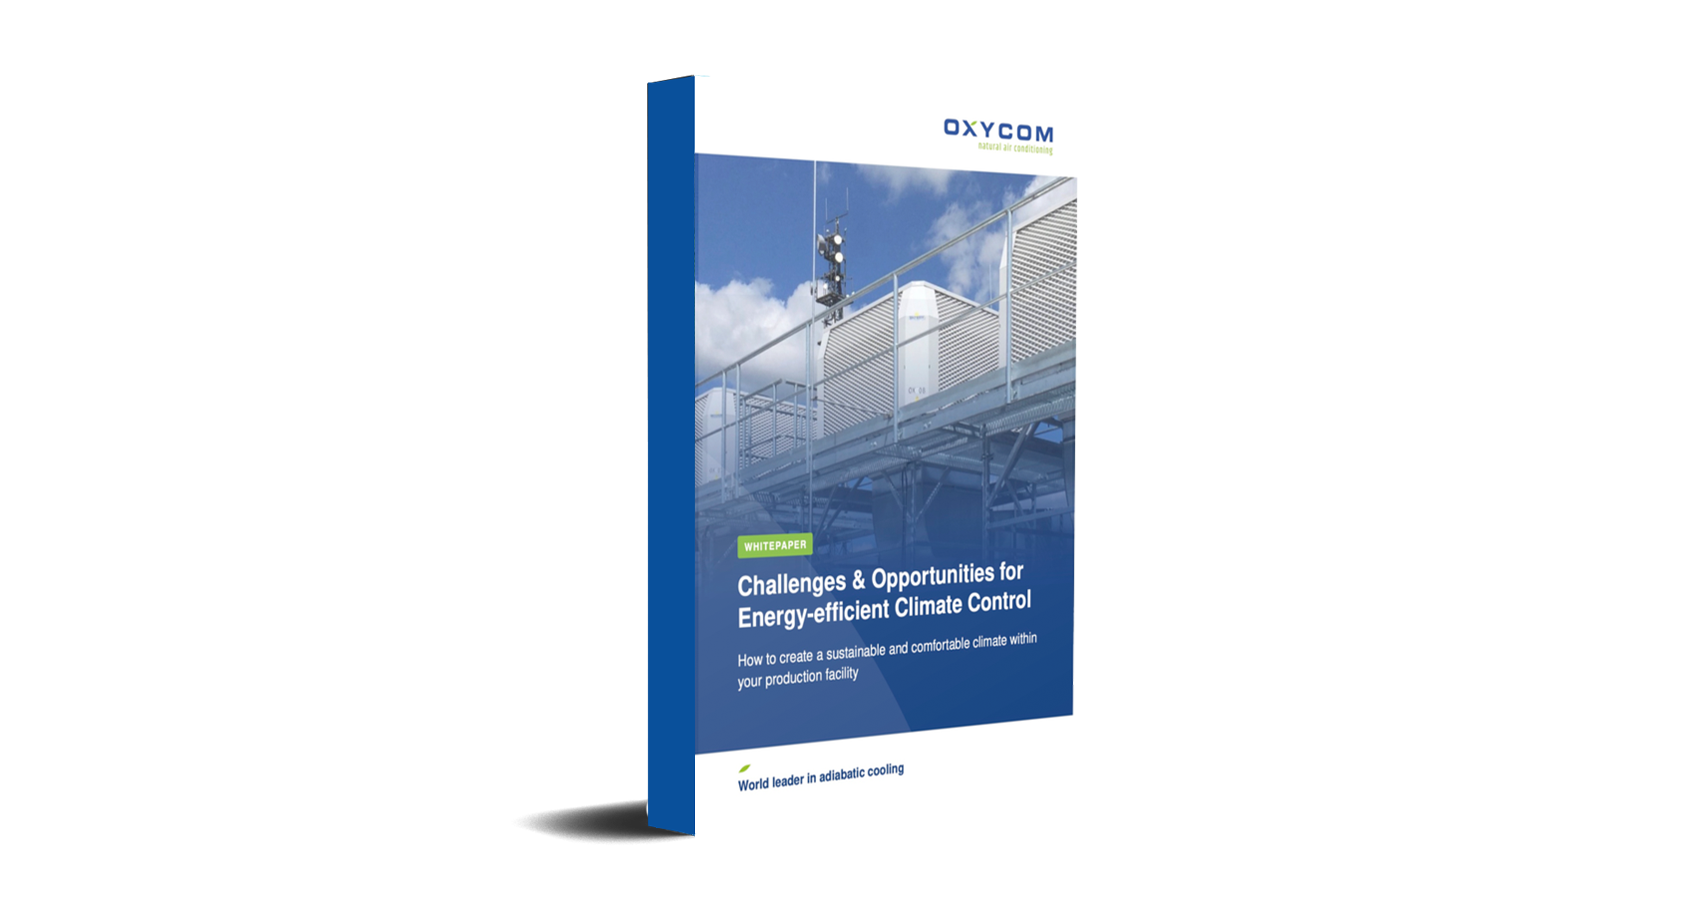 Whitepaper: Opportunities & Challenges for energy-efficient climate control